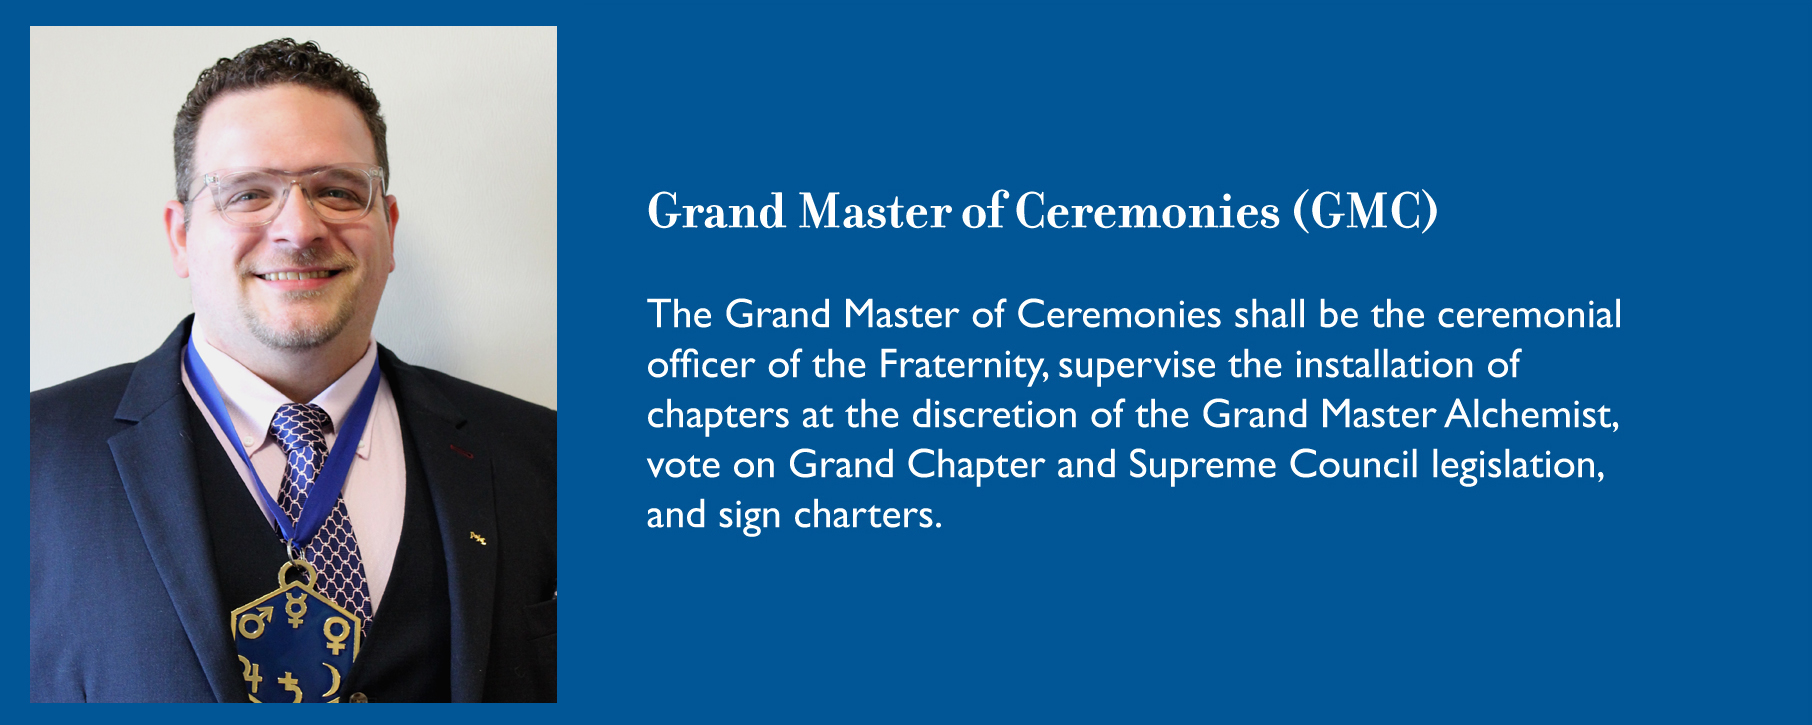 Grand Master of Ceremonies